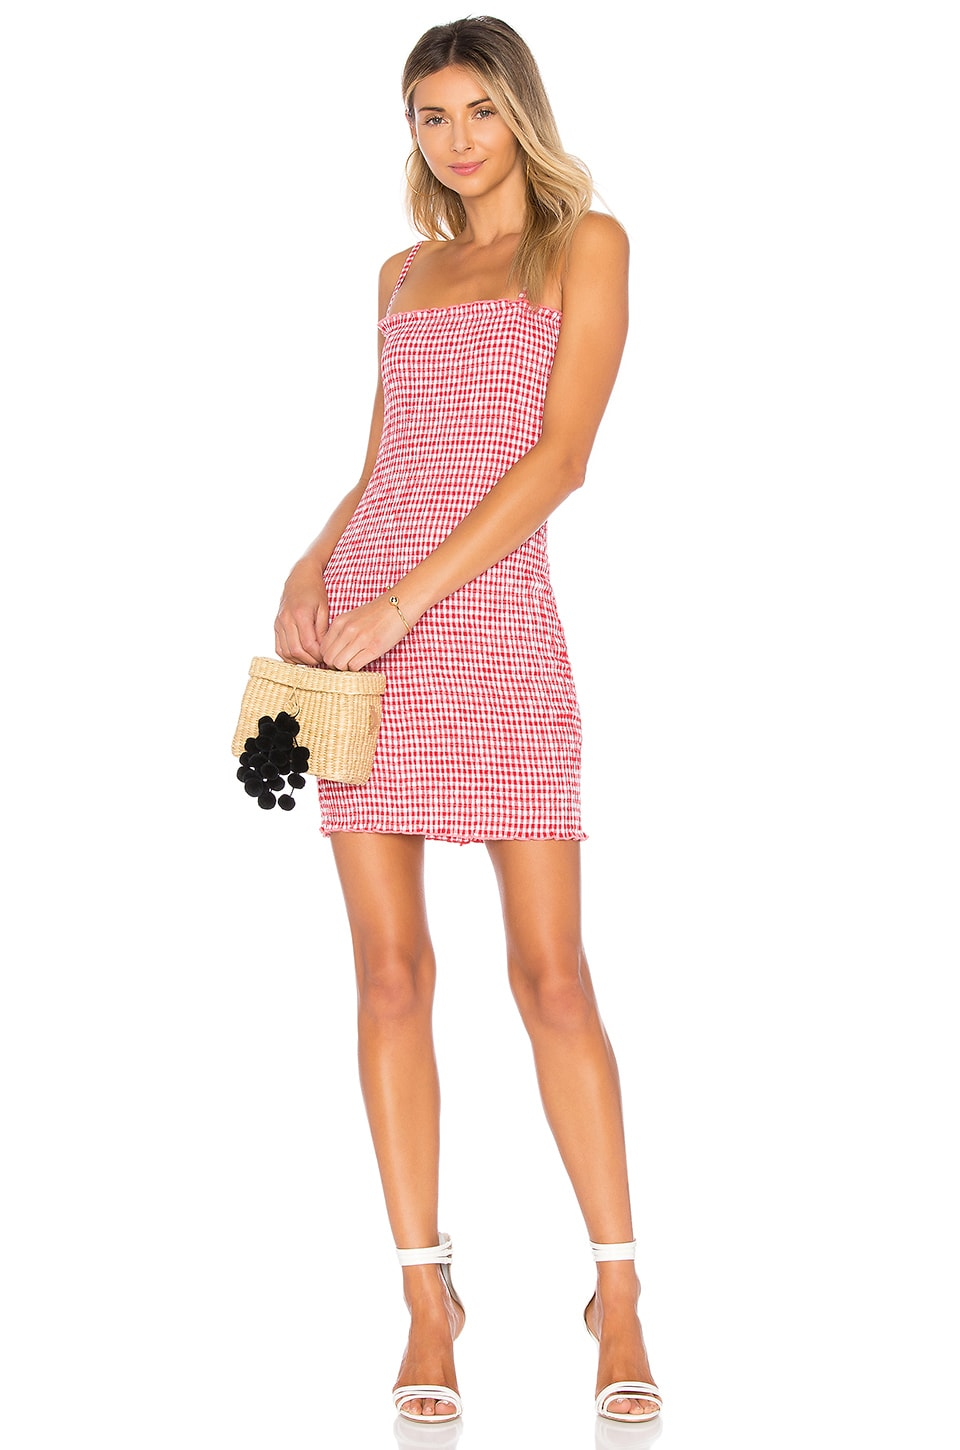 LIONESS Havana Smocked Mini Dress in Red Gingham